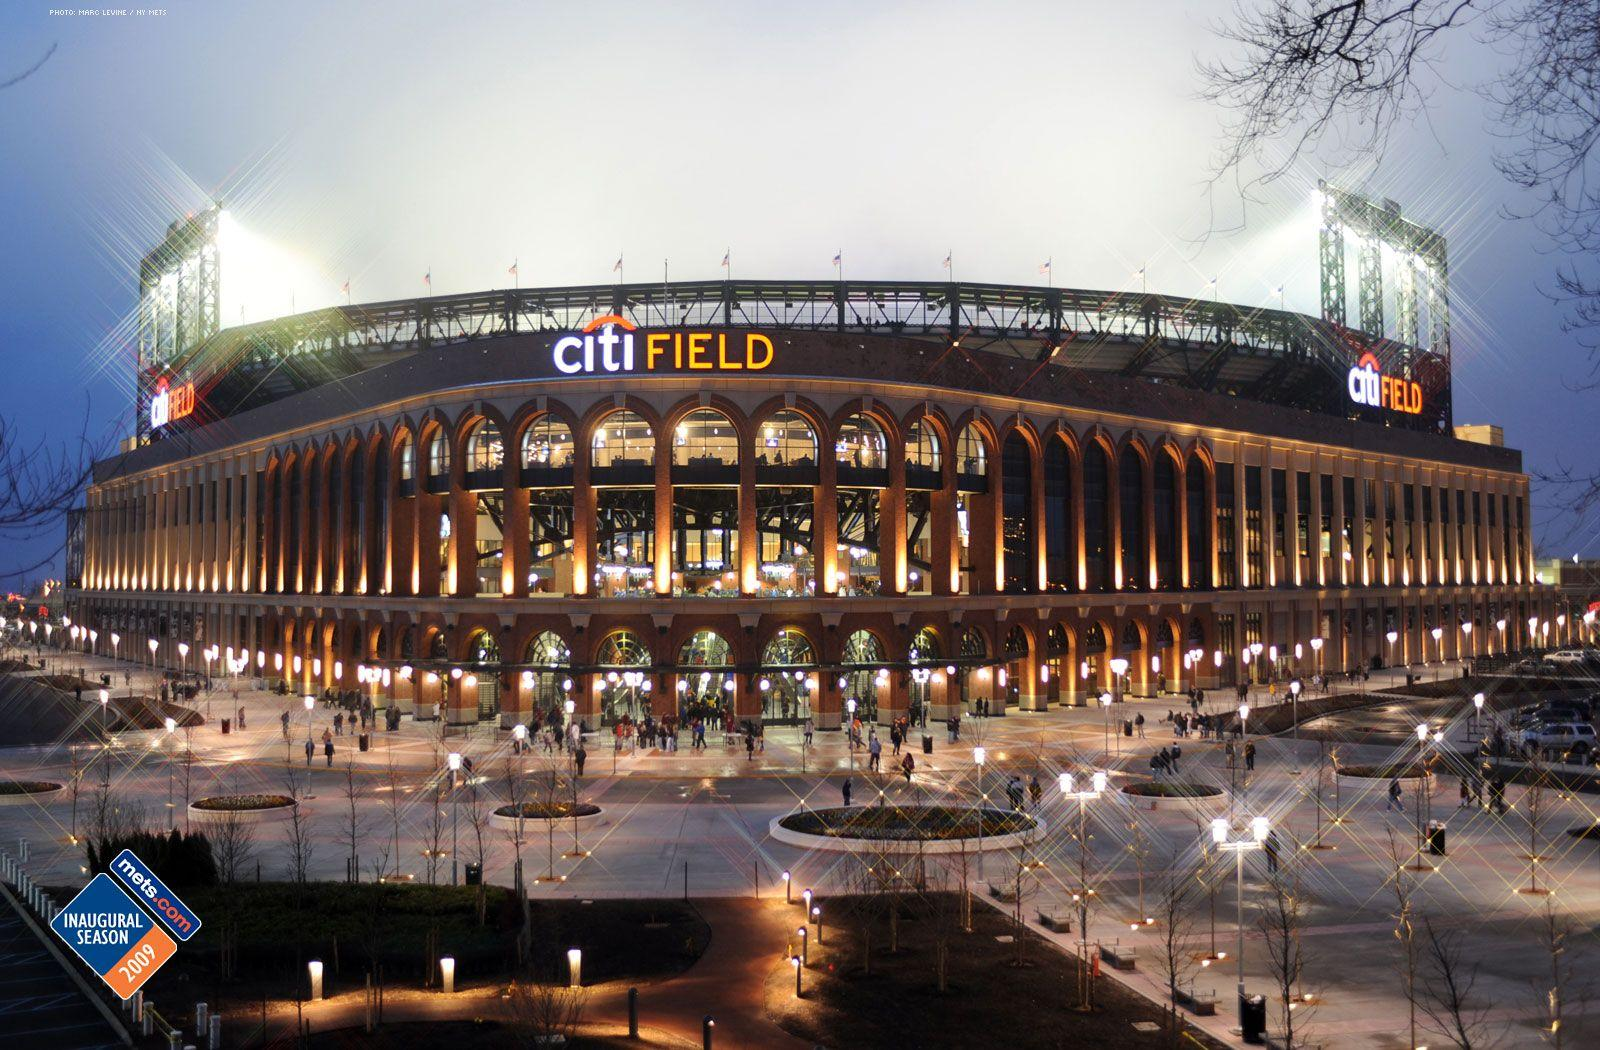 New York Mets HD Wallpaper | Full HD Pictures | METS | Pinterest ...